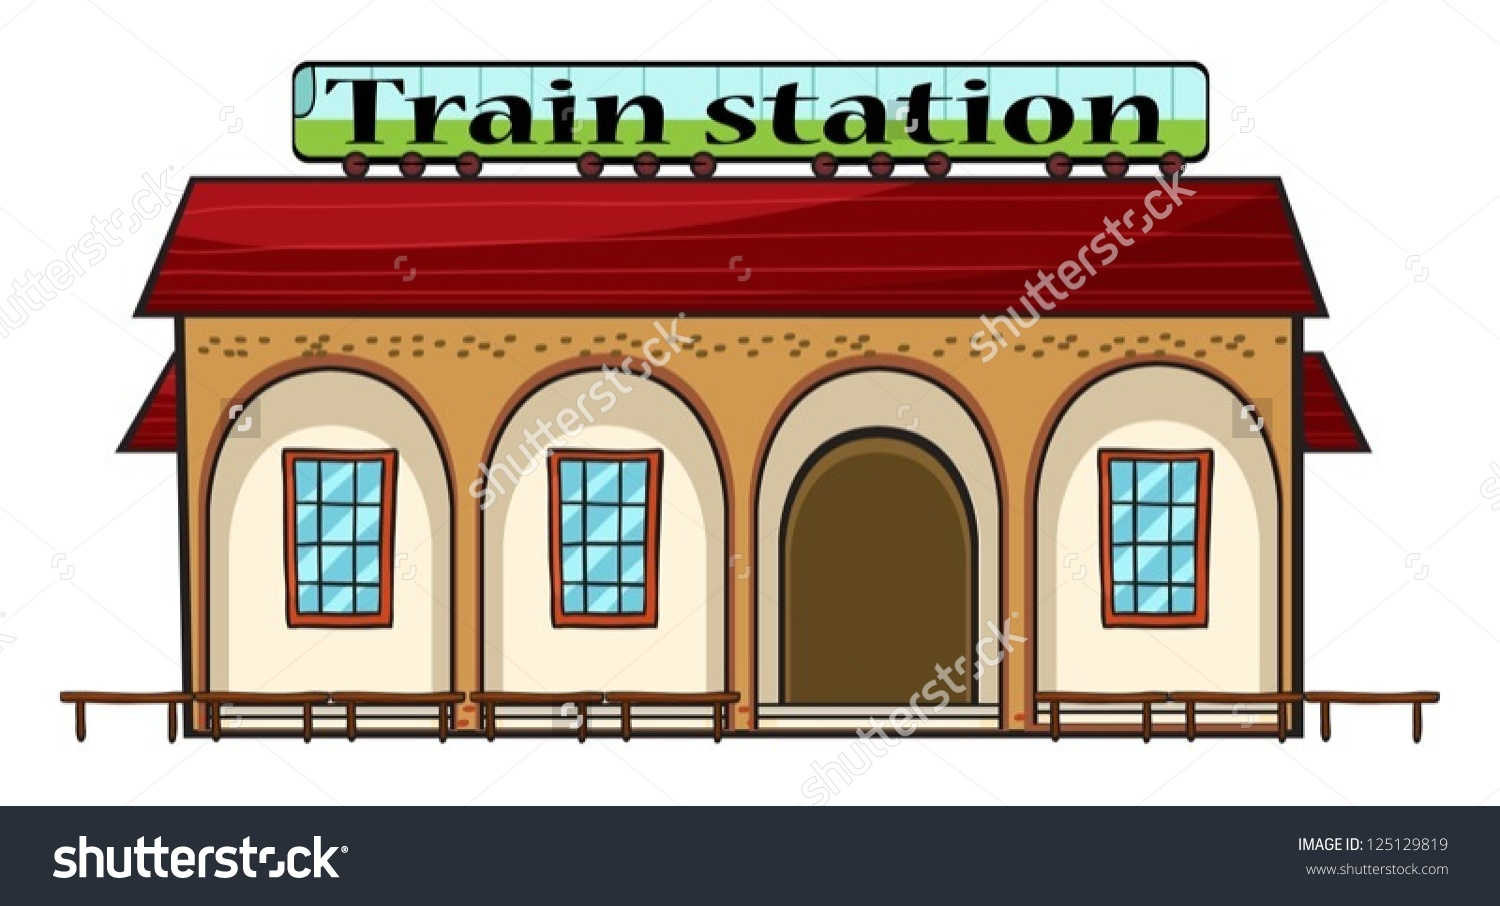 Illustration Train Station On White Background Stock Vector.